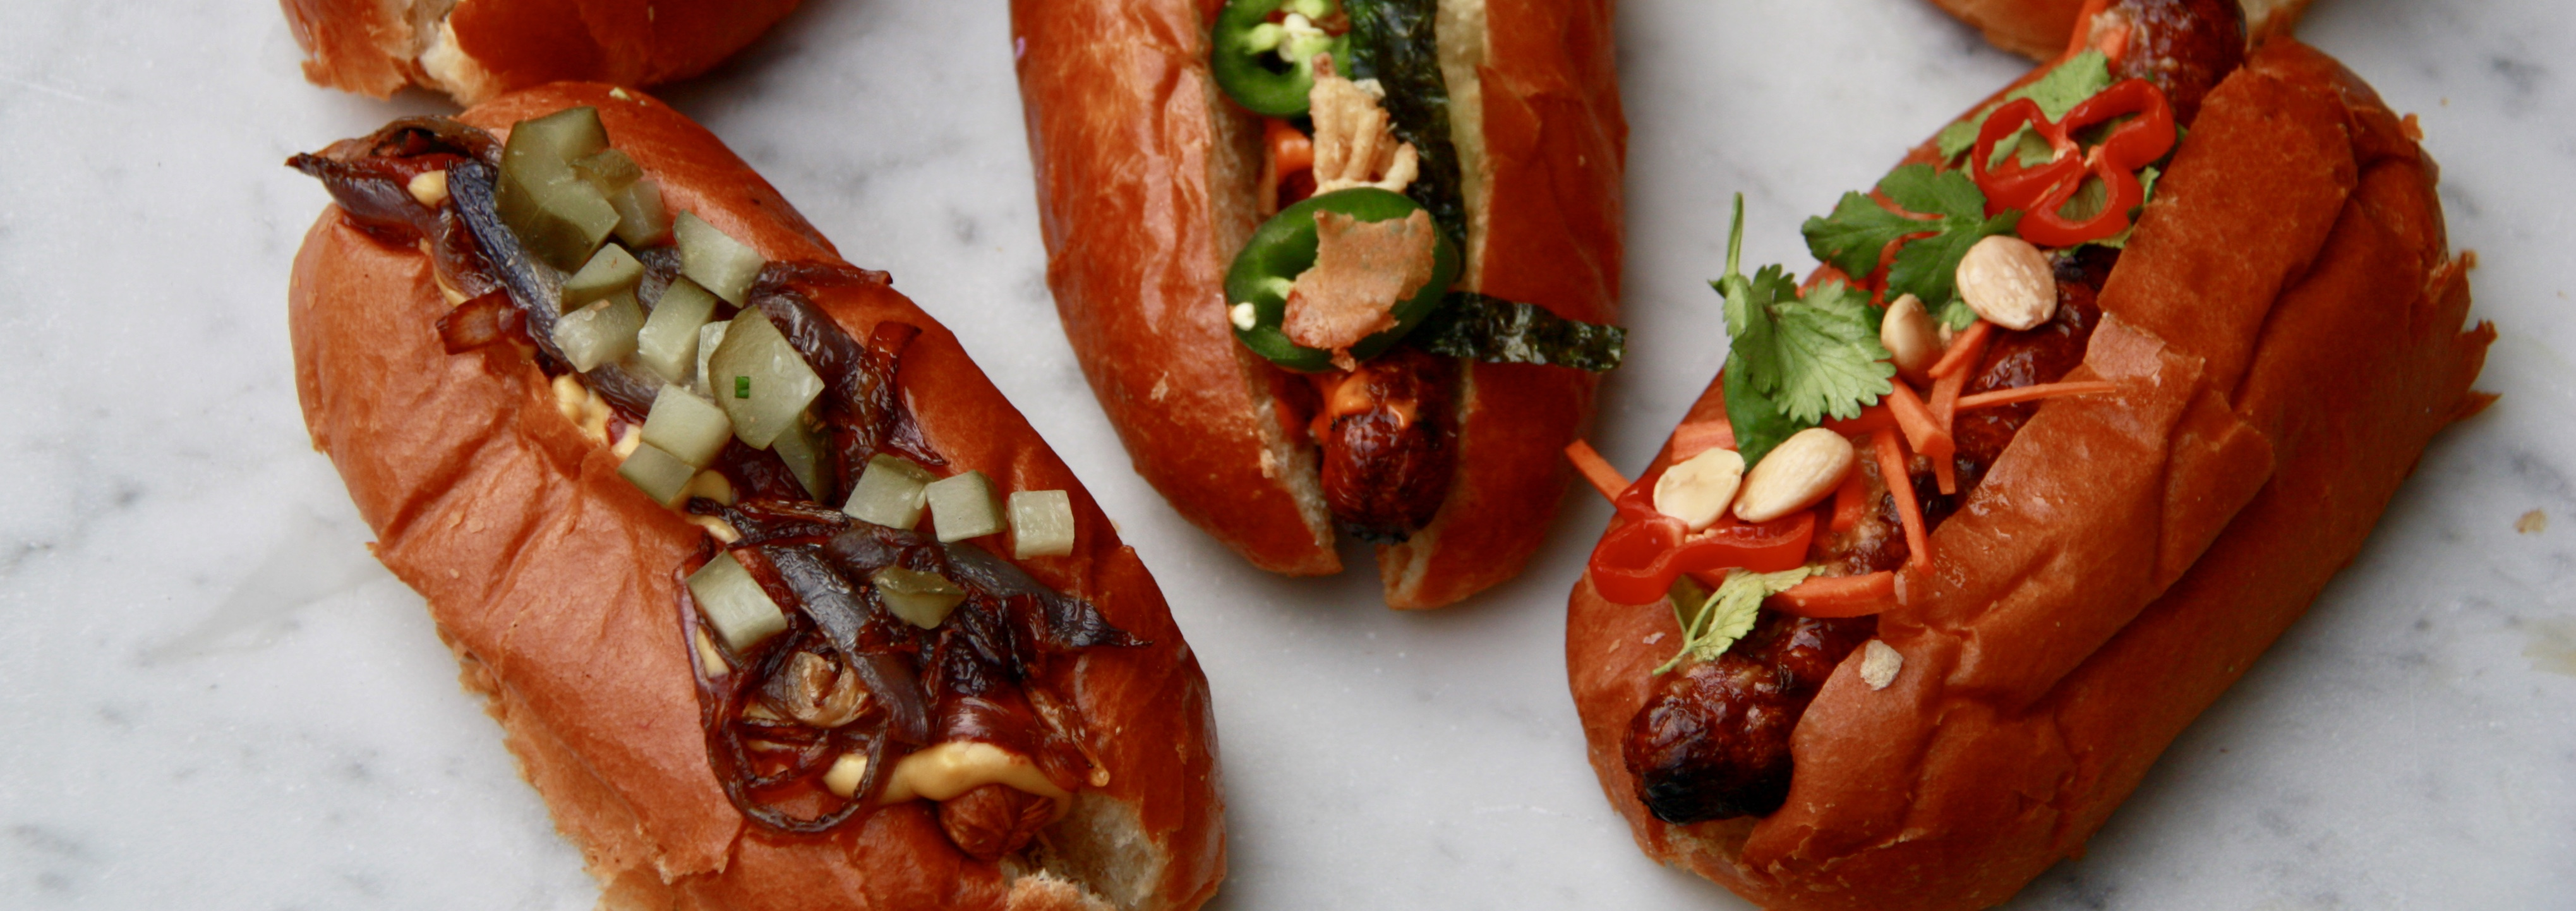 Ultimate Hot Dog Toppings